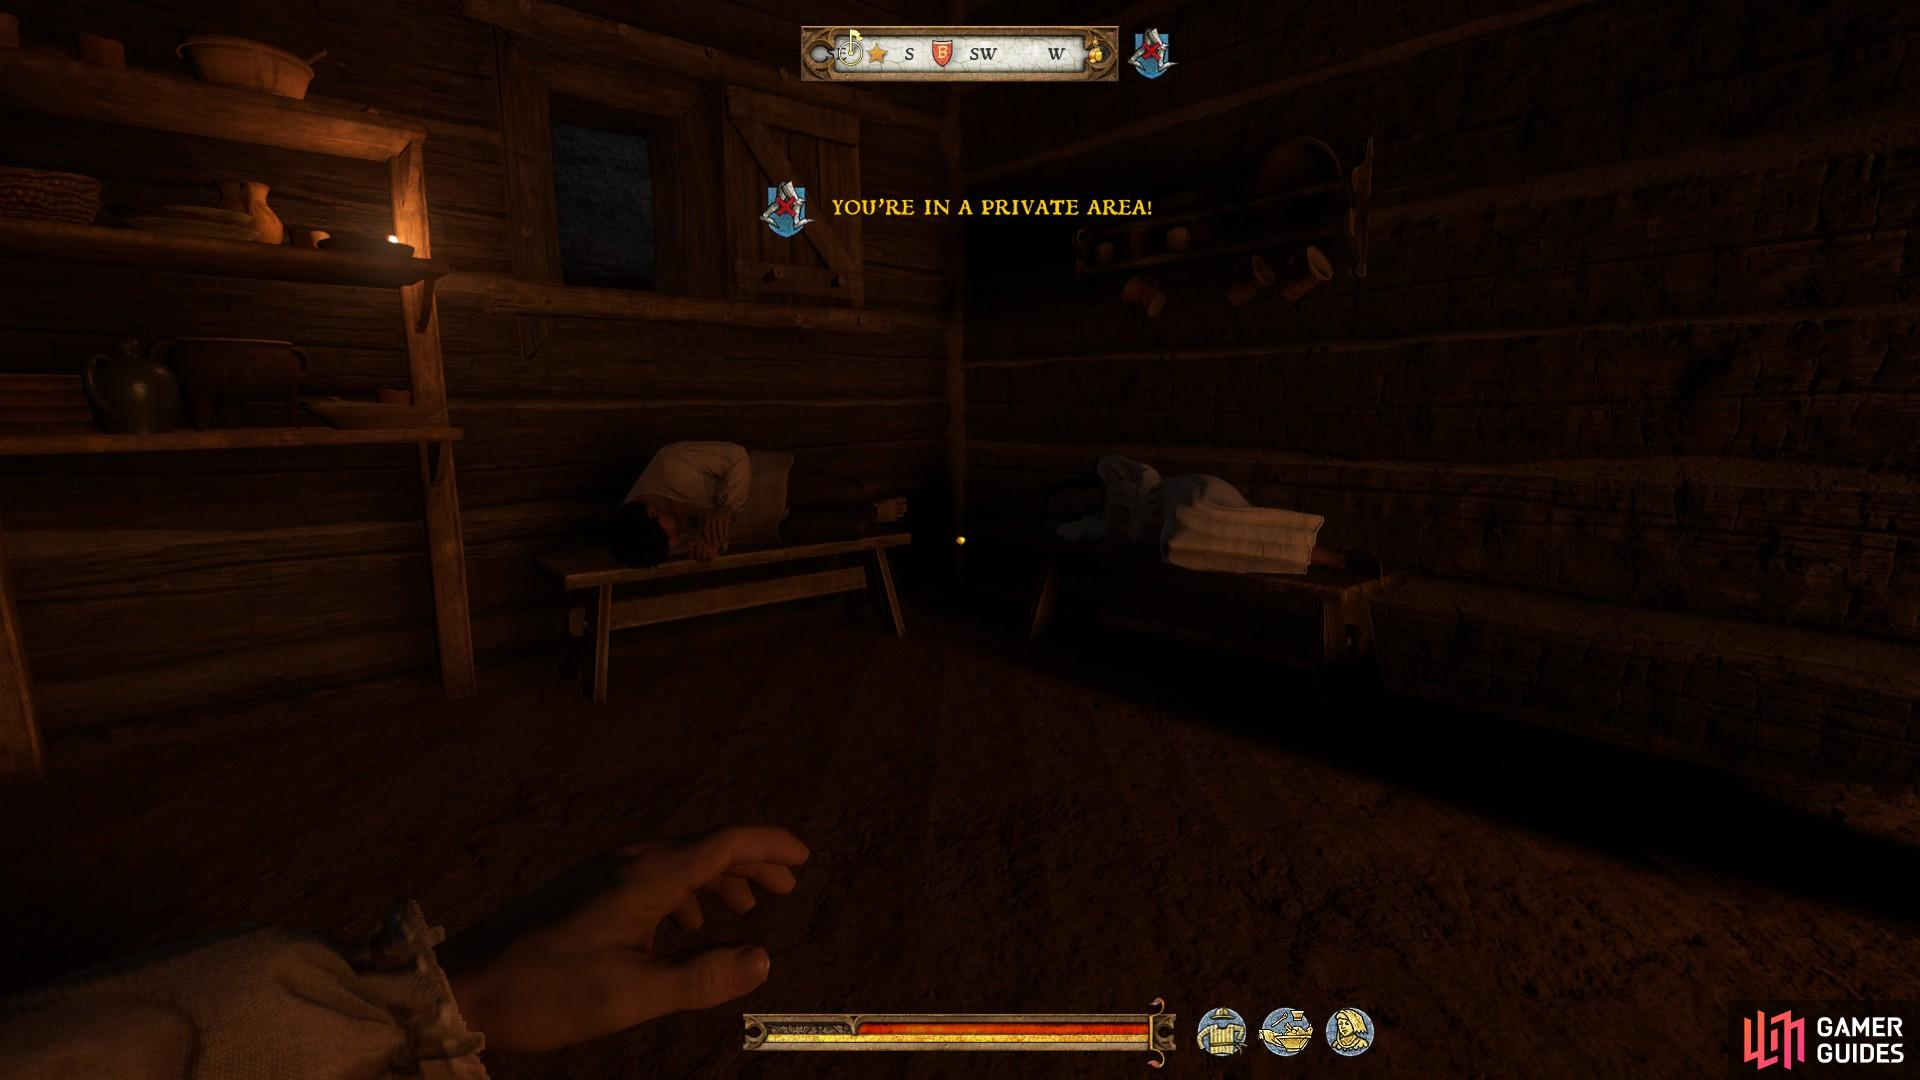 You will find the merchant sleeping very close to his wife, making it impossible to knock him out without her waking.